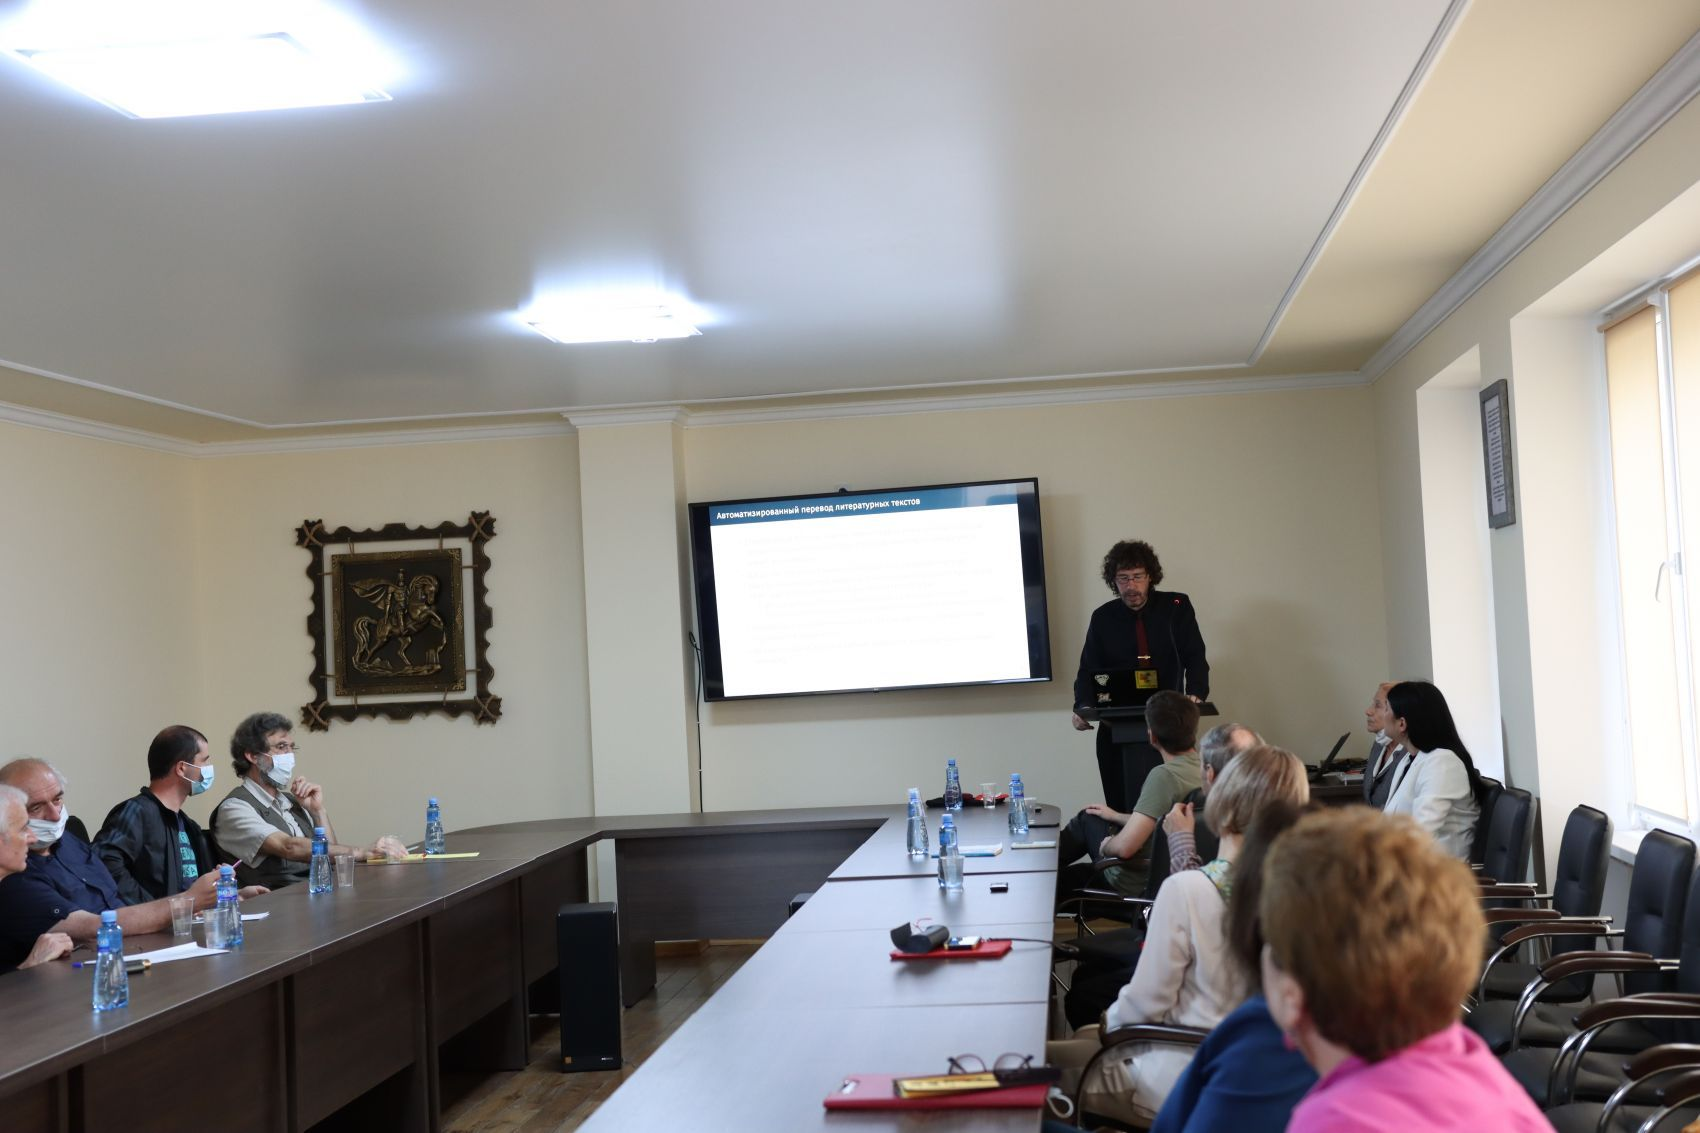 (A photograph of Tristan Miller speaking at Abkhaz State University)